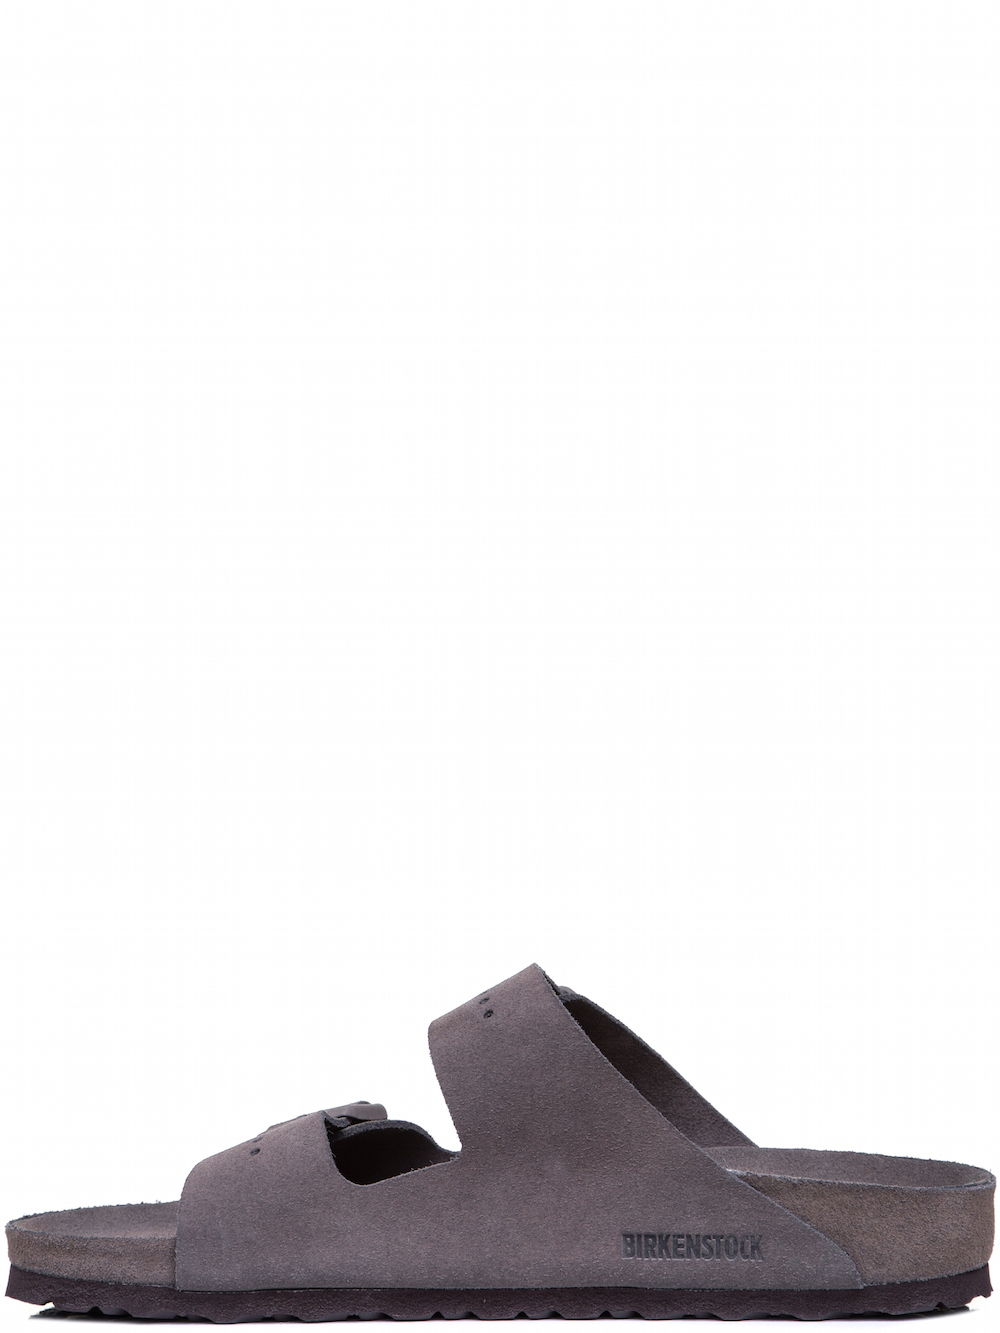 RICK OWENS X BIRKENSTOCK ARIZONA SANDAL IN DUST